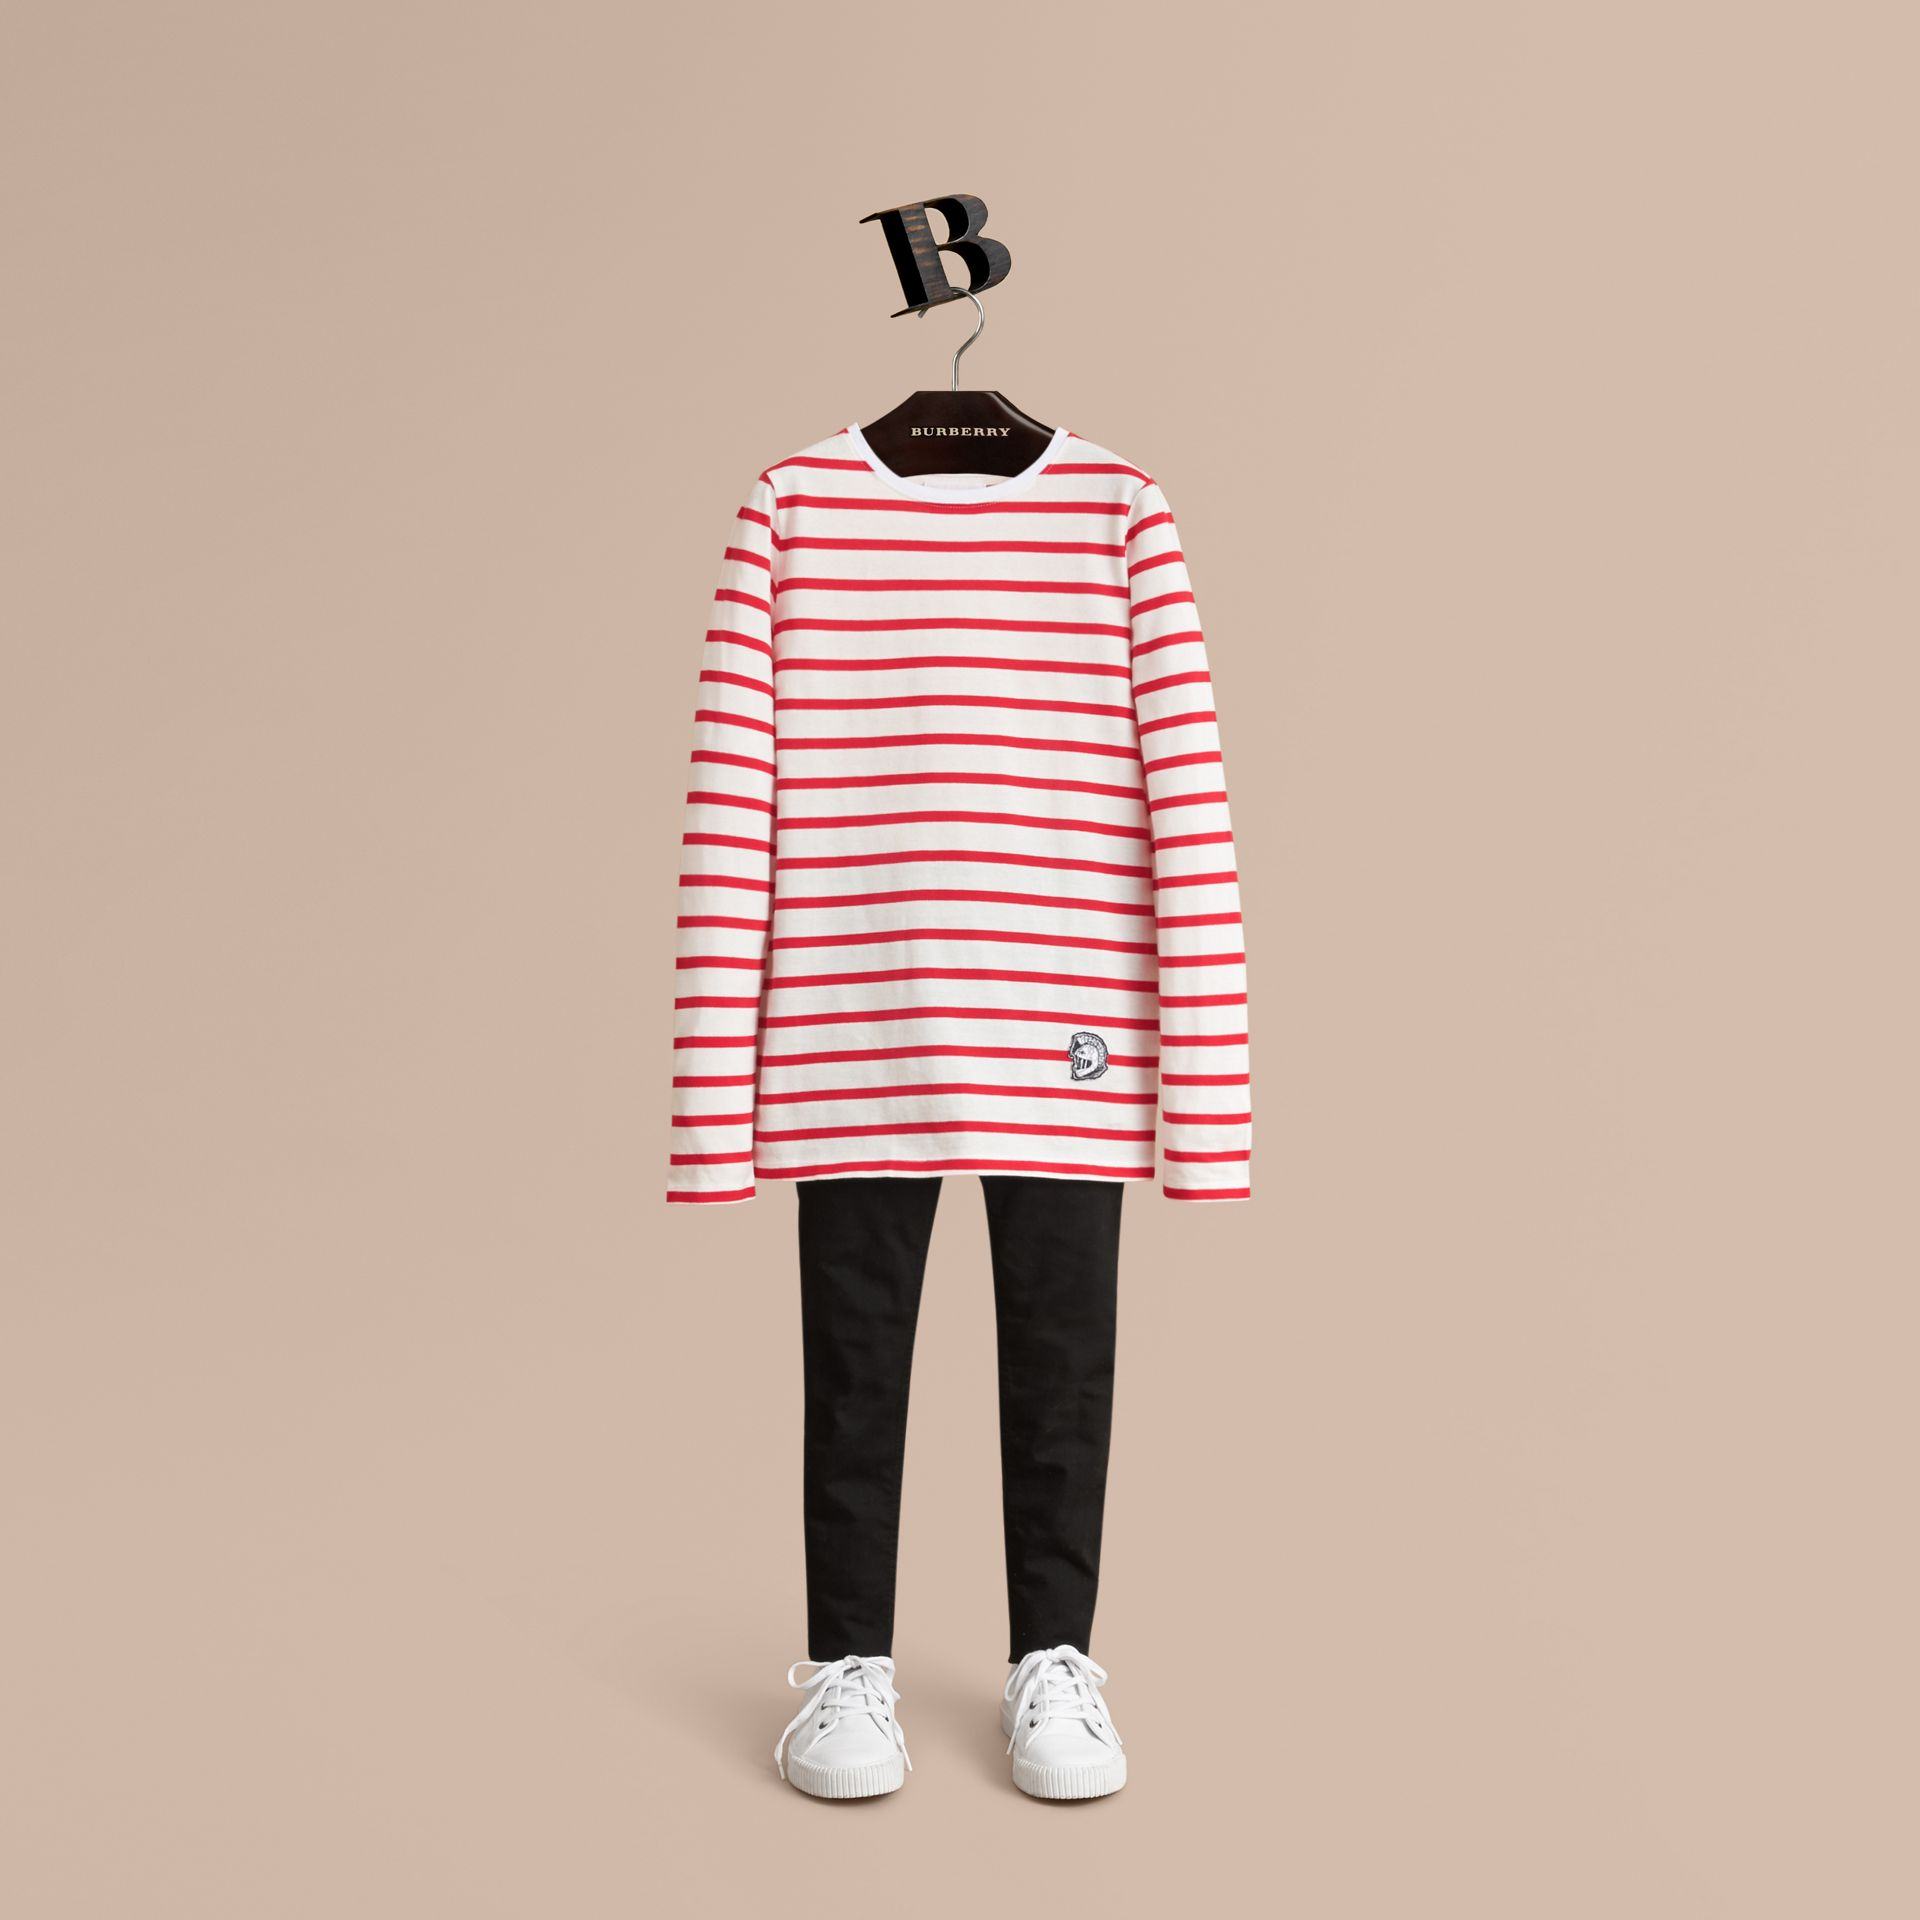 Unisex Pallas Helmet Motif Breton Stripe Cotton Top | Burberry - gallery image 1